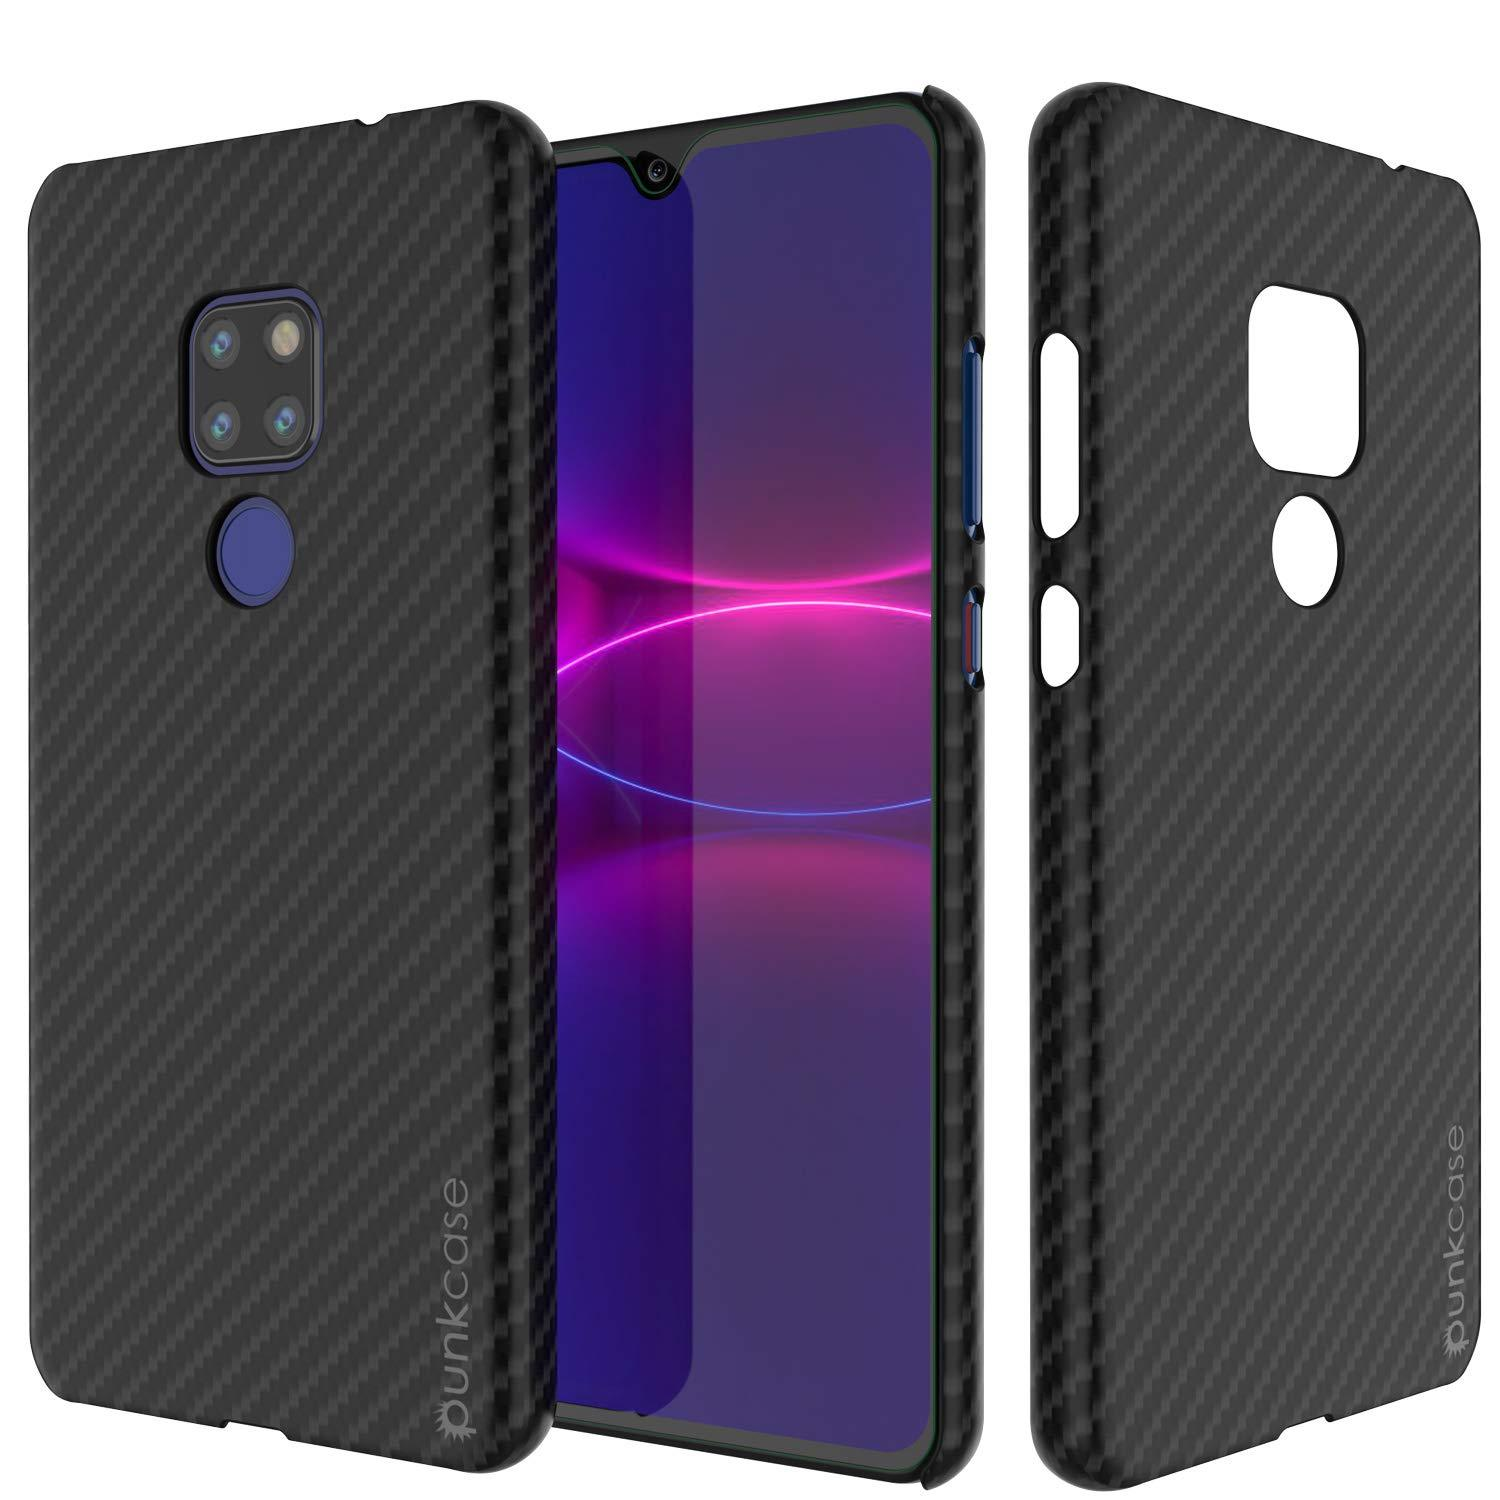 Huawei Mate 20 Pro Case, Punkcase CarbonShield, Heavy Duty [Black] Cover